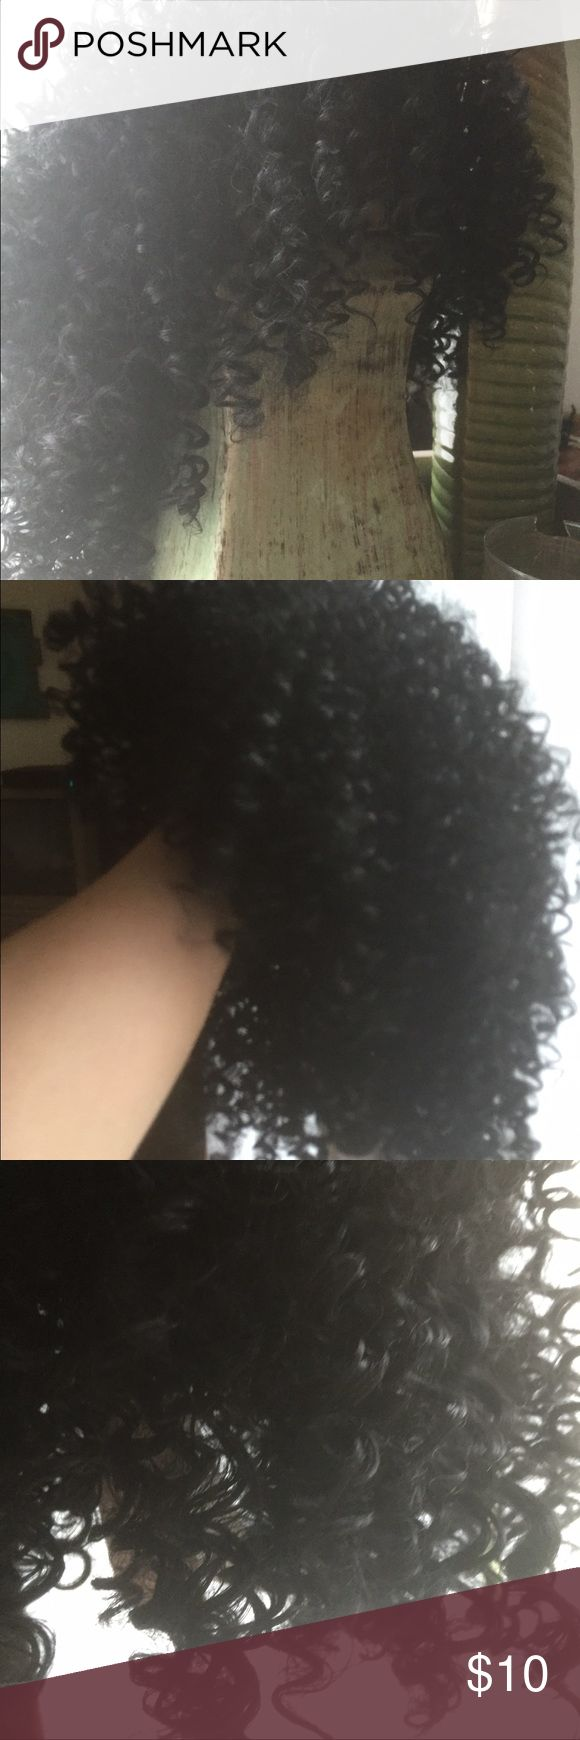 Shoulder length black curly wig Tags on. Tight curls are supposed to loosen. Accessories